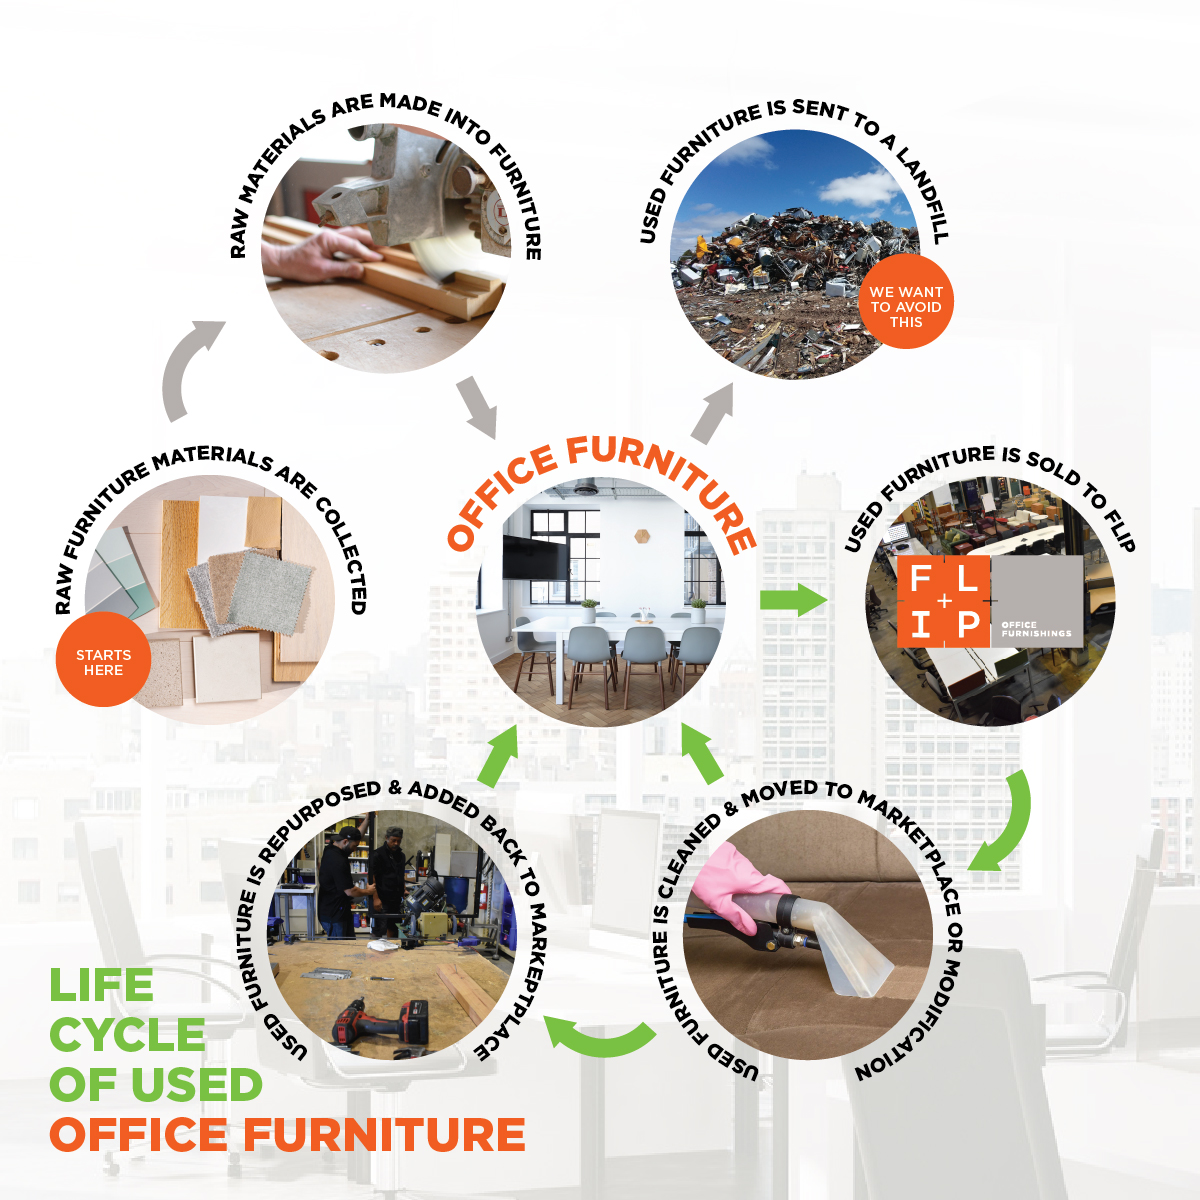 Lifecycle of Used Office Furniture